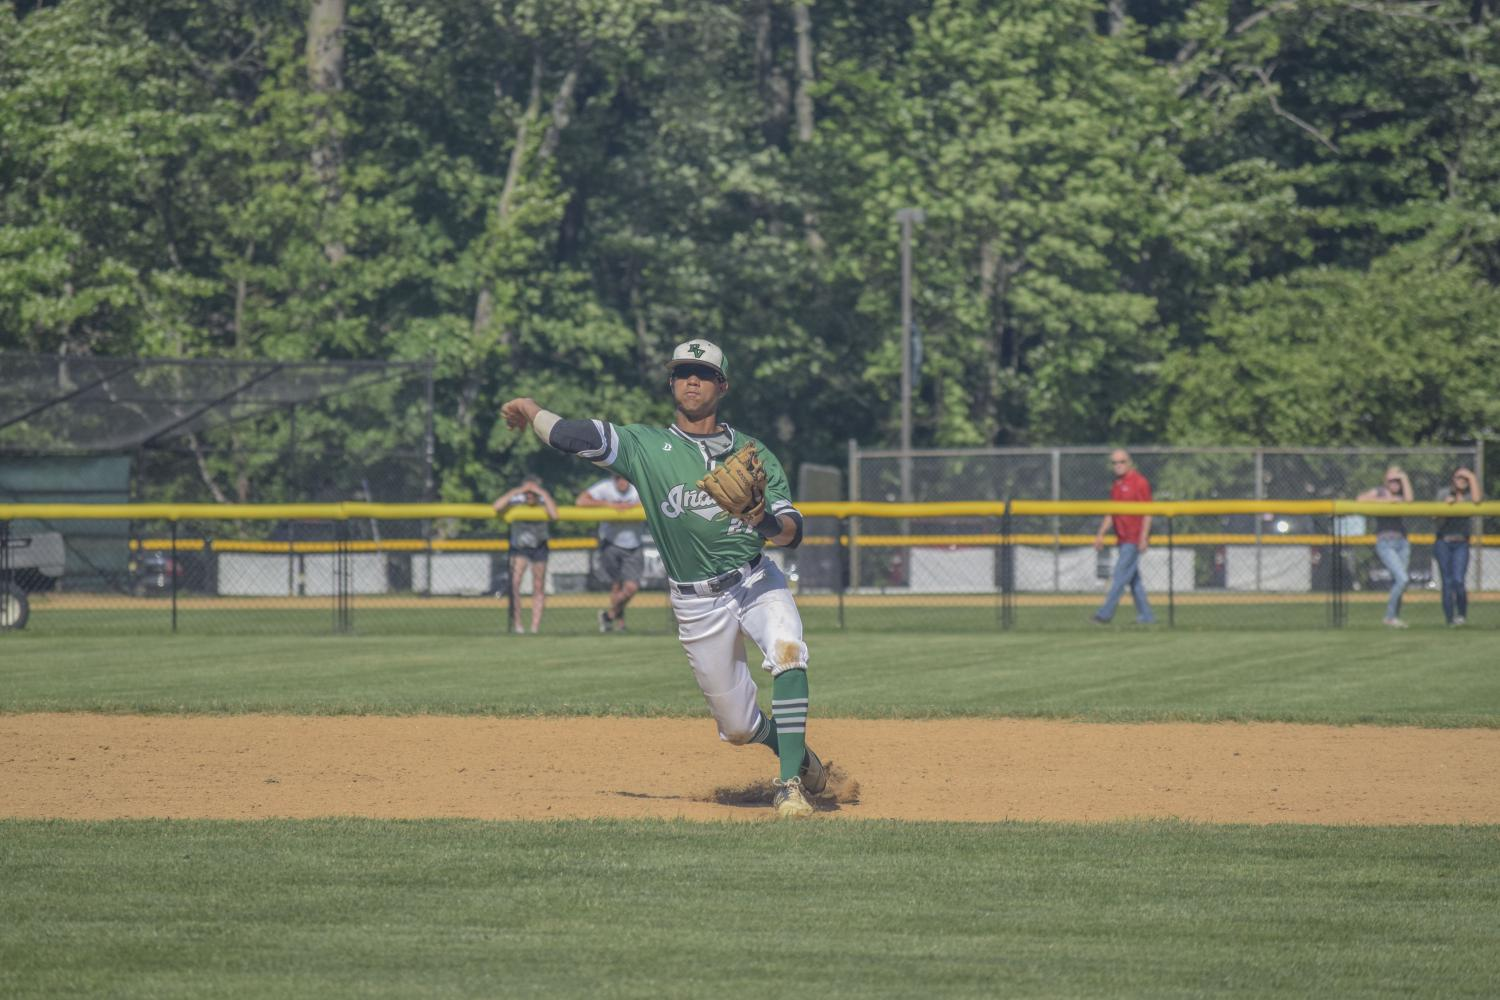 PV routs Old Tappan to close out week